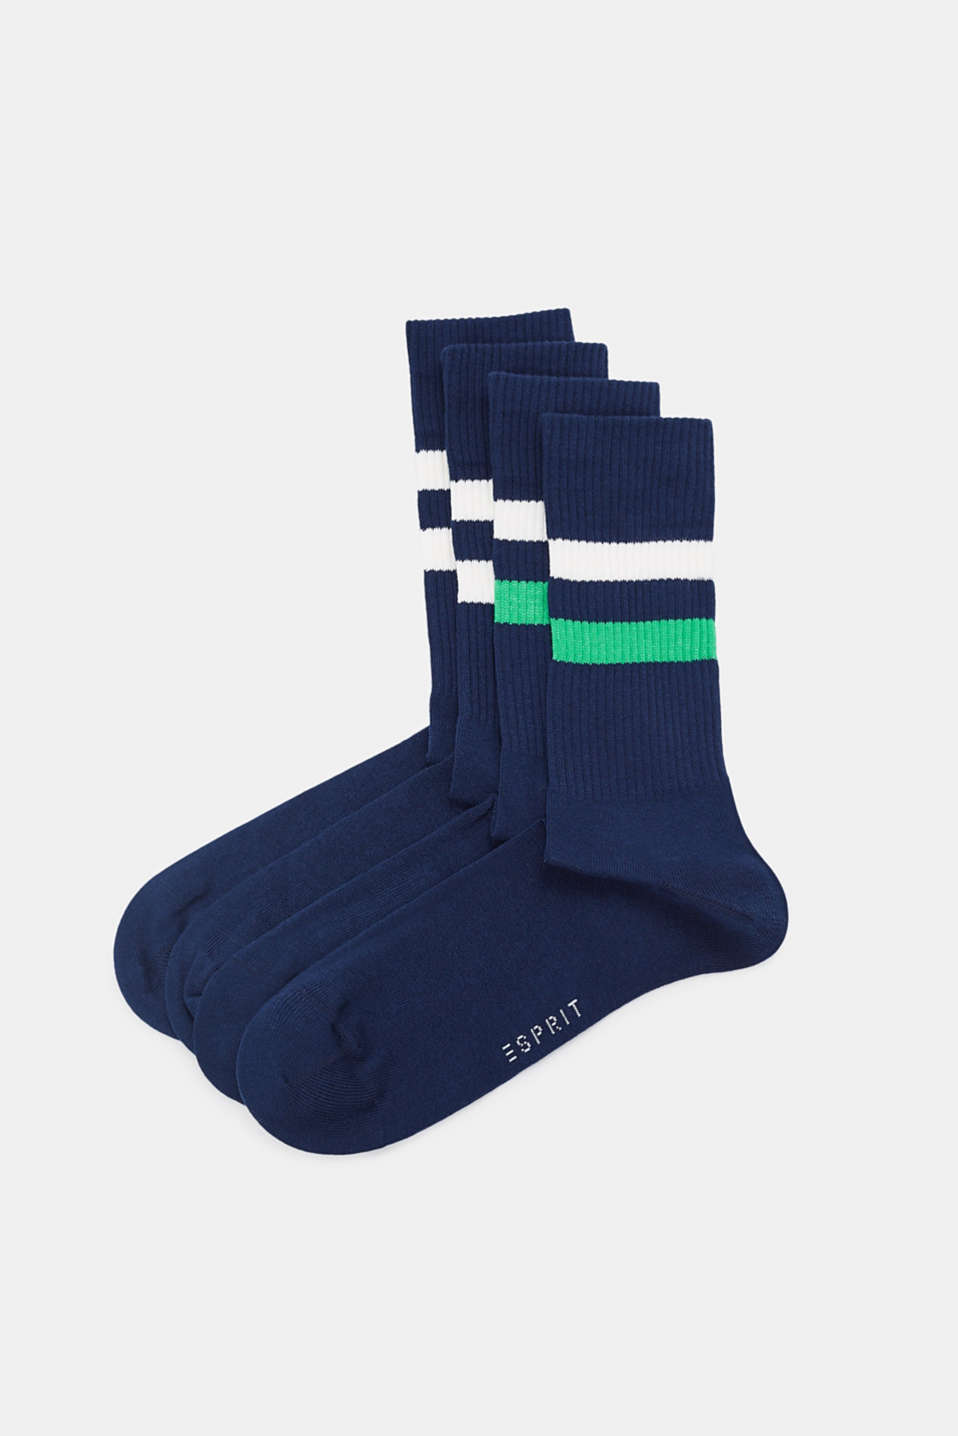 Esprit - Double pack of striped socks, made of blended cotton